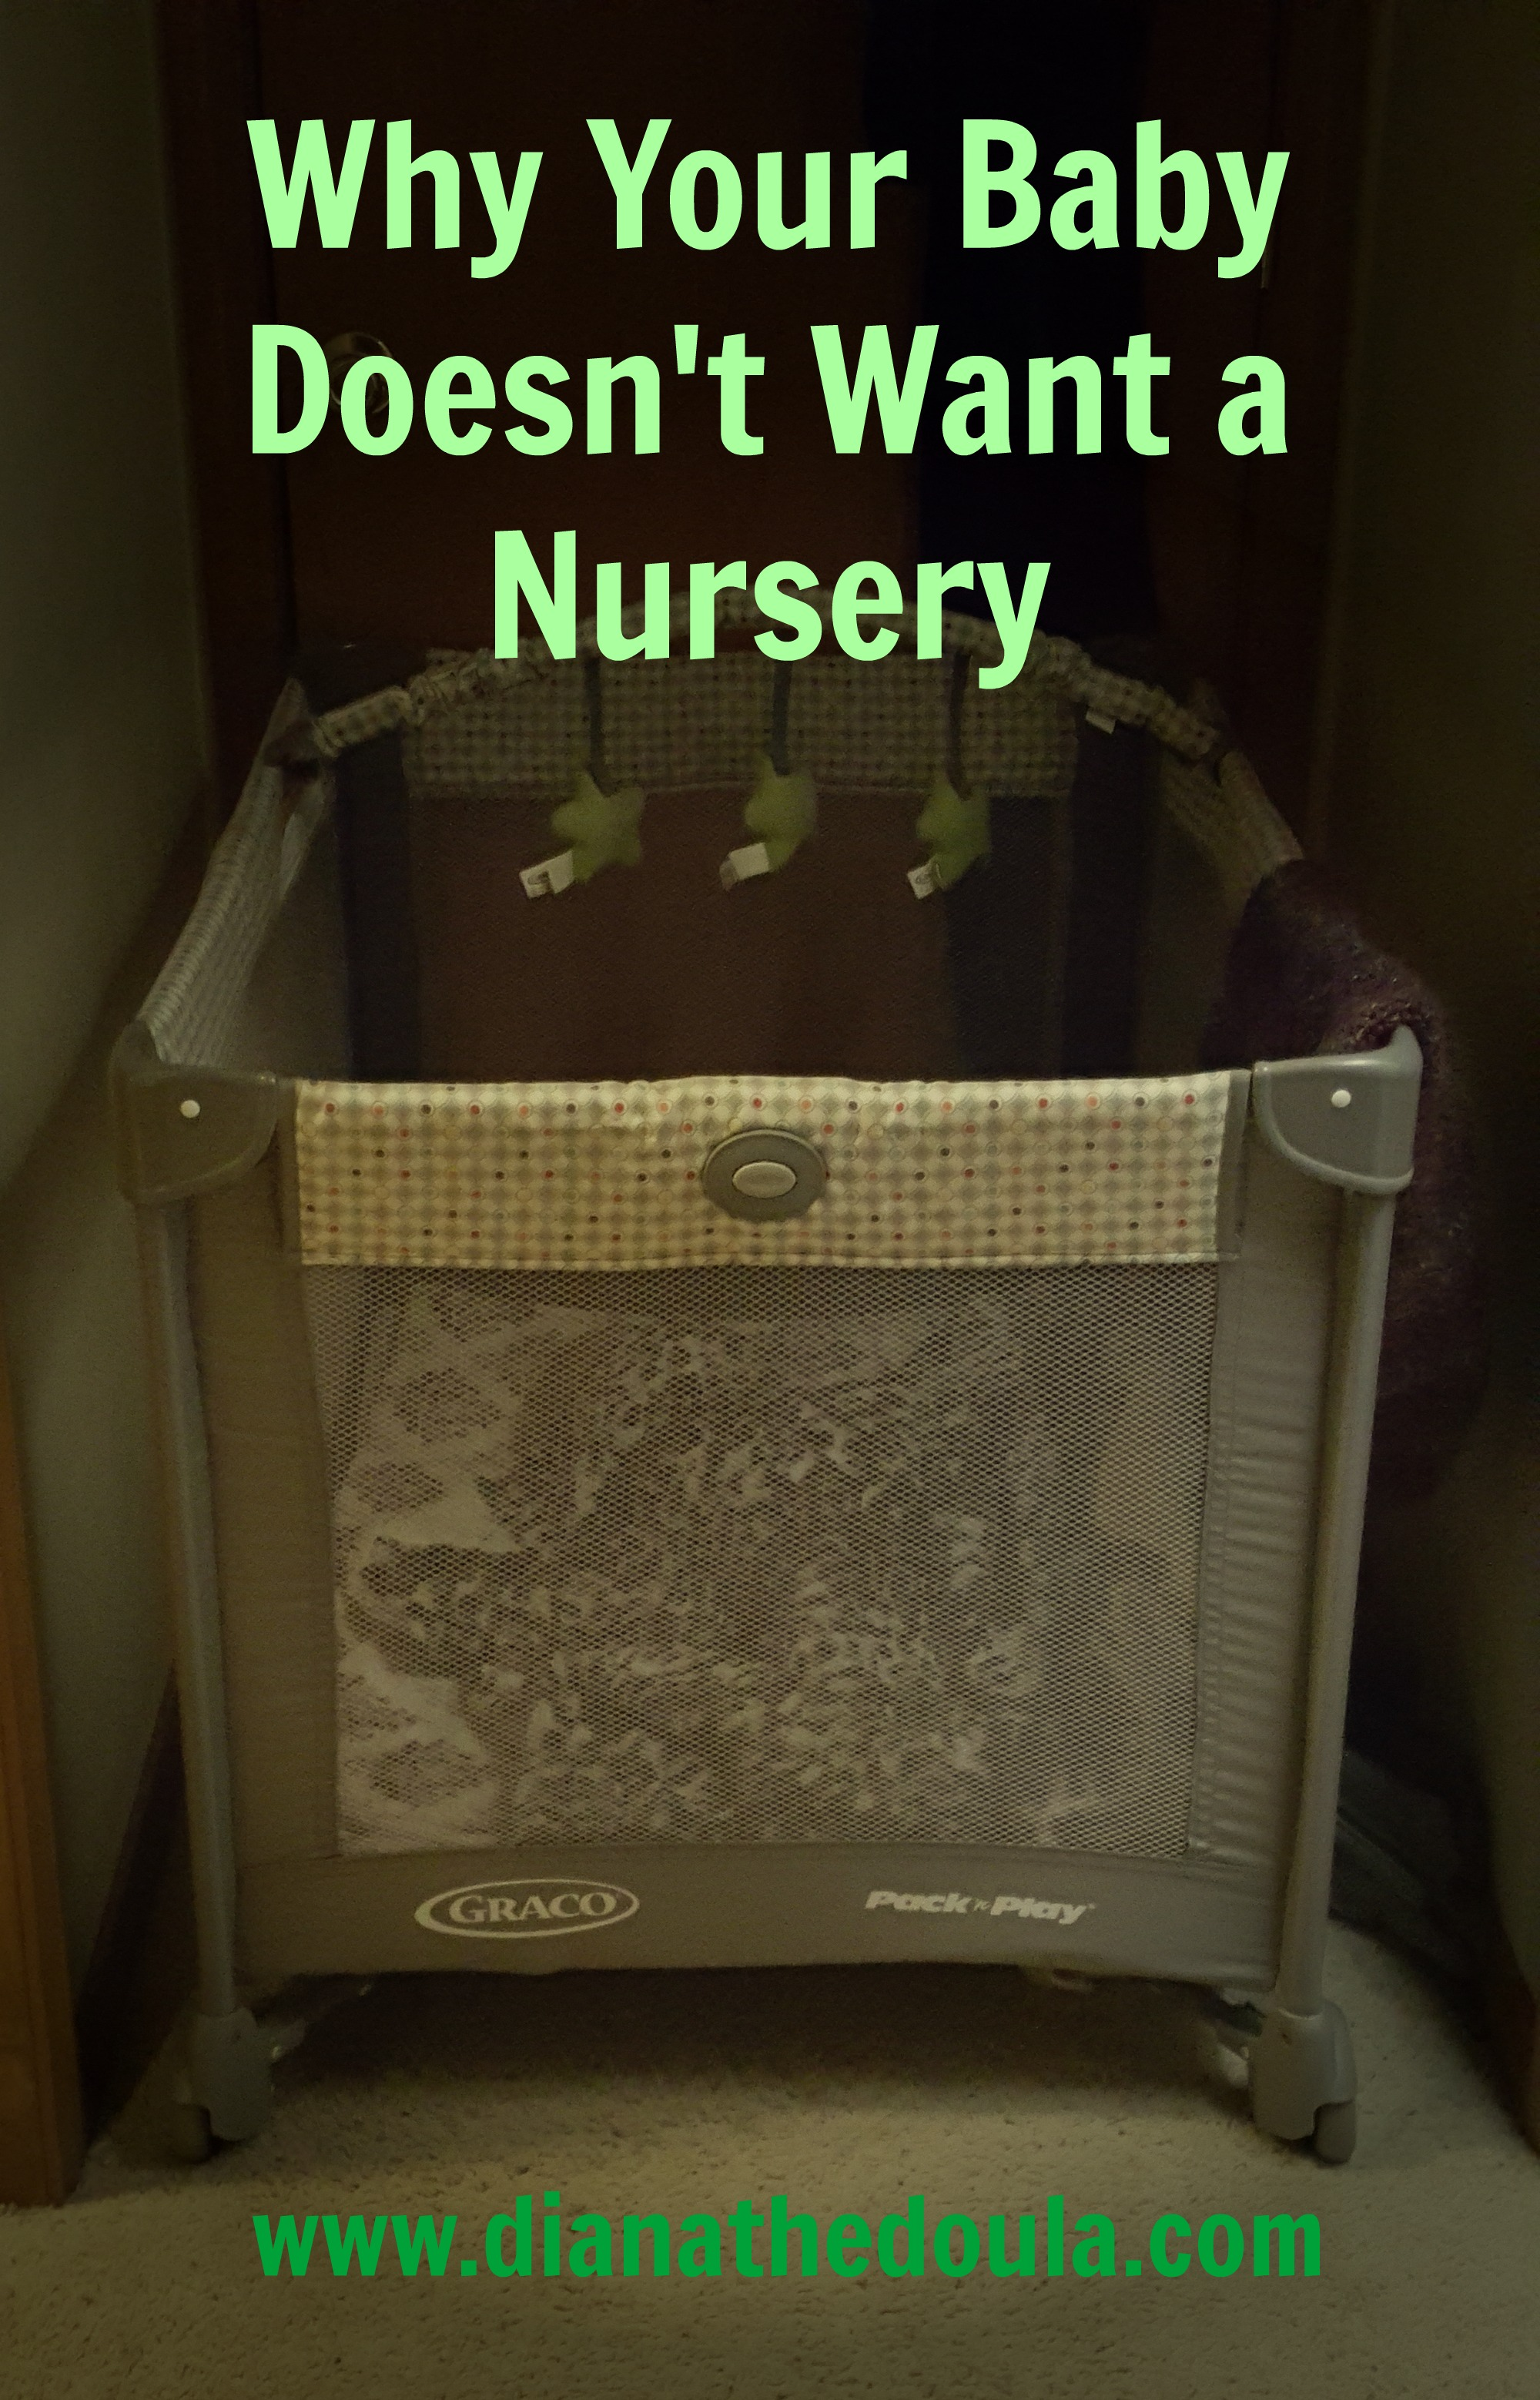 Why Your Baby Doesn't Want a Nursery!